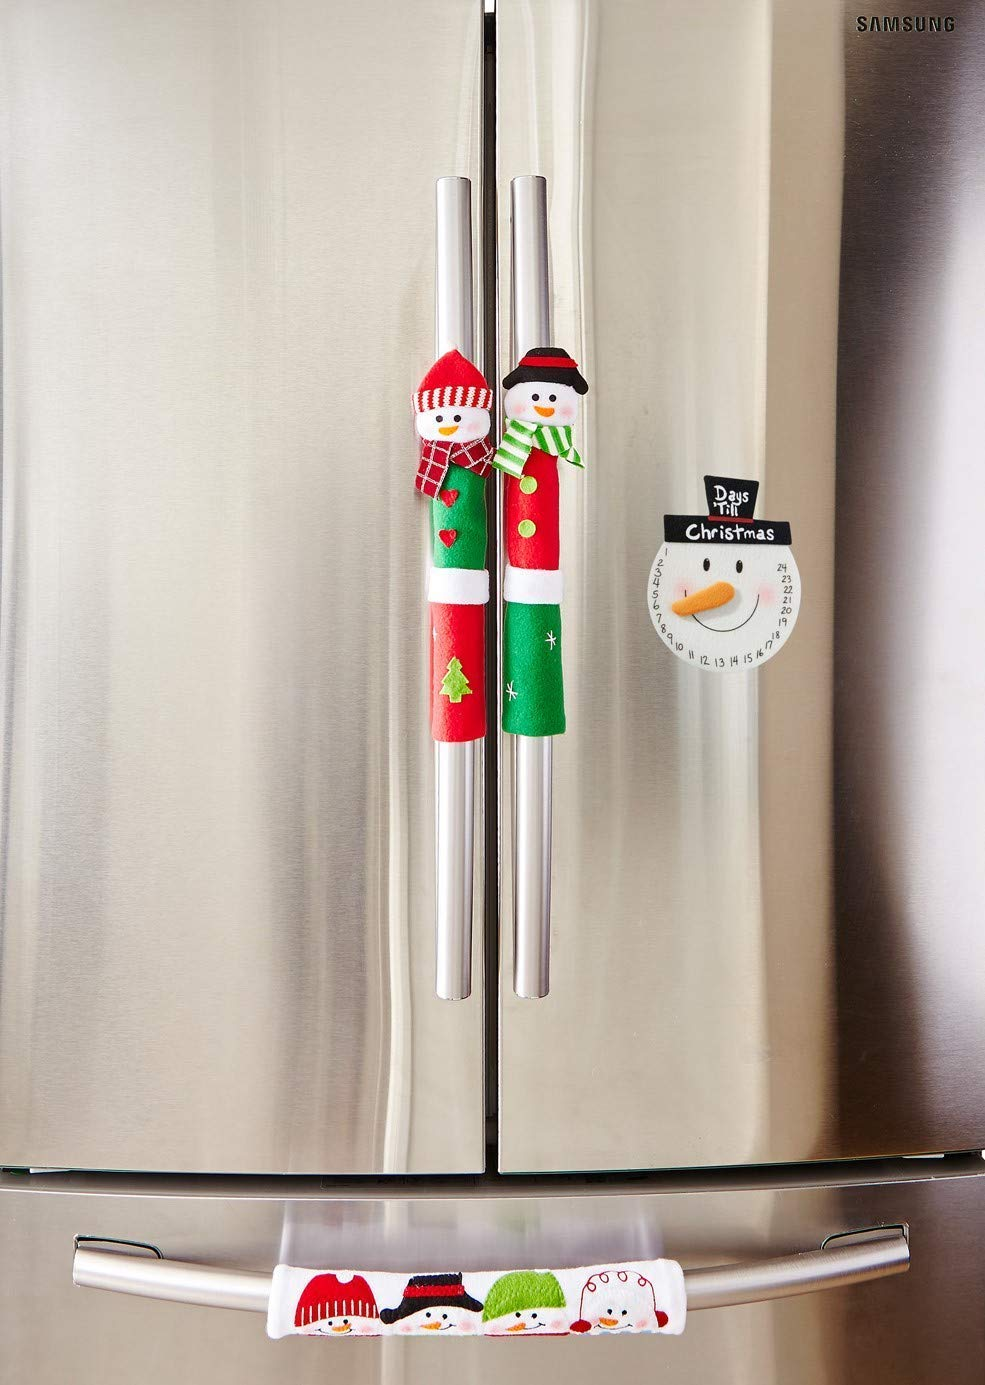 MSQ Christmas Decorations Holiday Ornaments 3pcs Christmas Snowman Handle Covers Appliance Decorations Handle Covers for Kitchen Refrigerator Microwave Oven, Best for Christmas/Thanksgiving Day